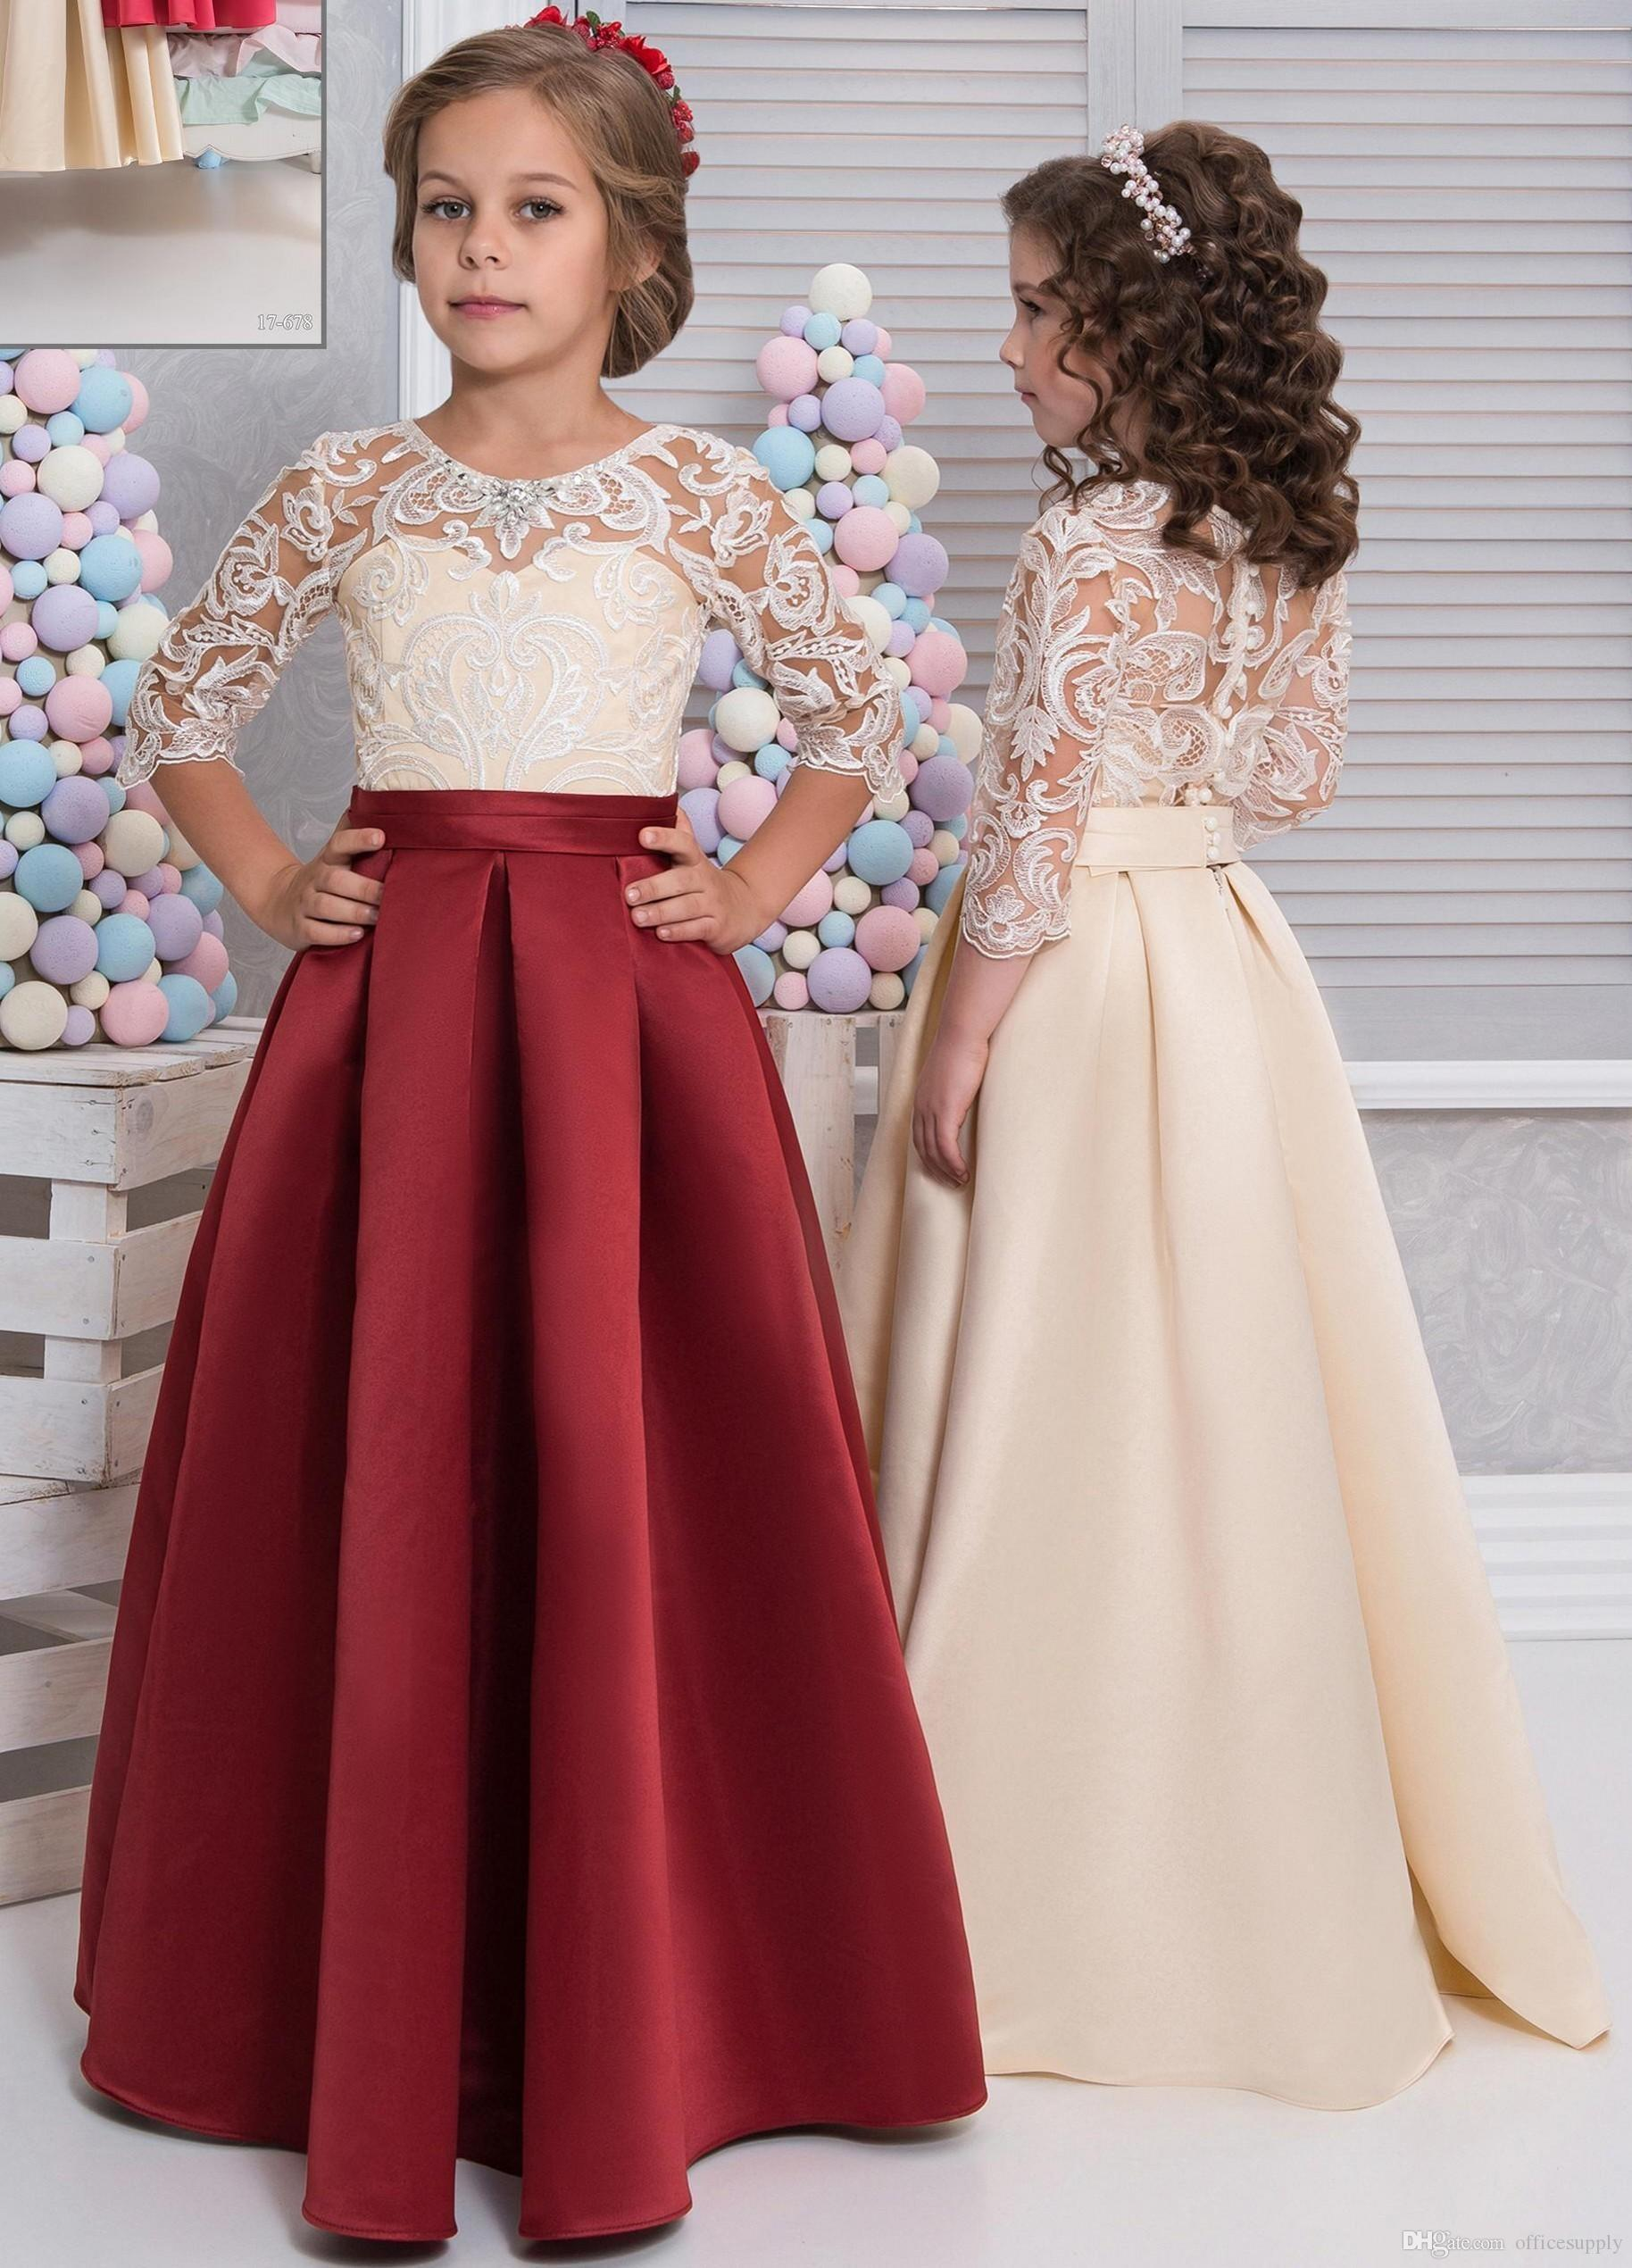 6cc74b611165 2018 Lace Satin Girls Pageant Dresses 3/4 Long Sleeves Dark Red Champagne  Fall Children Christmas Party Flower Girl Dresses Cute Flower Girl Dresses  Cute ...